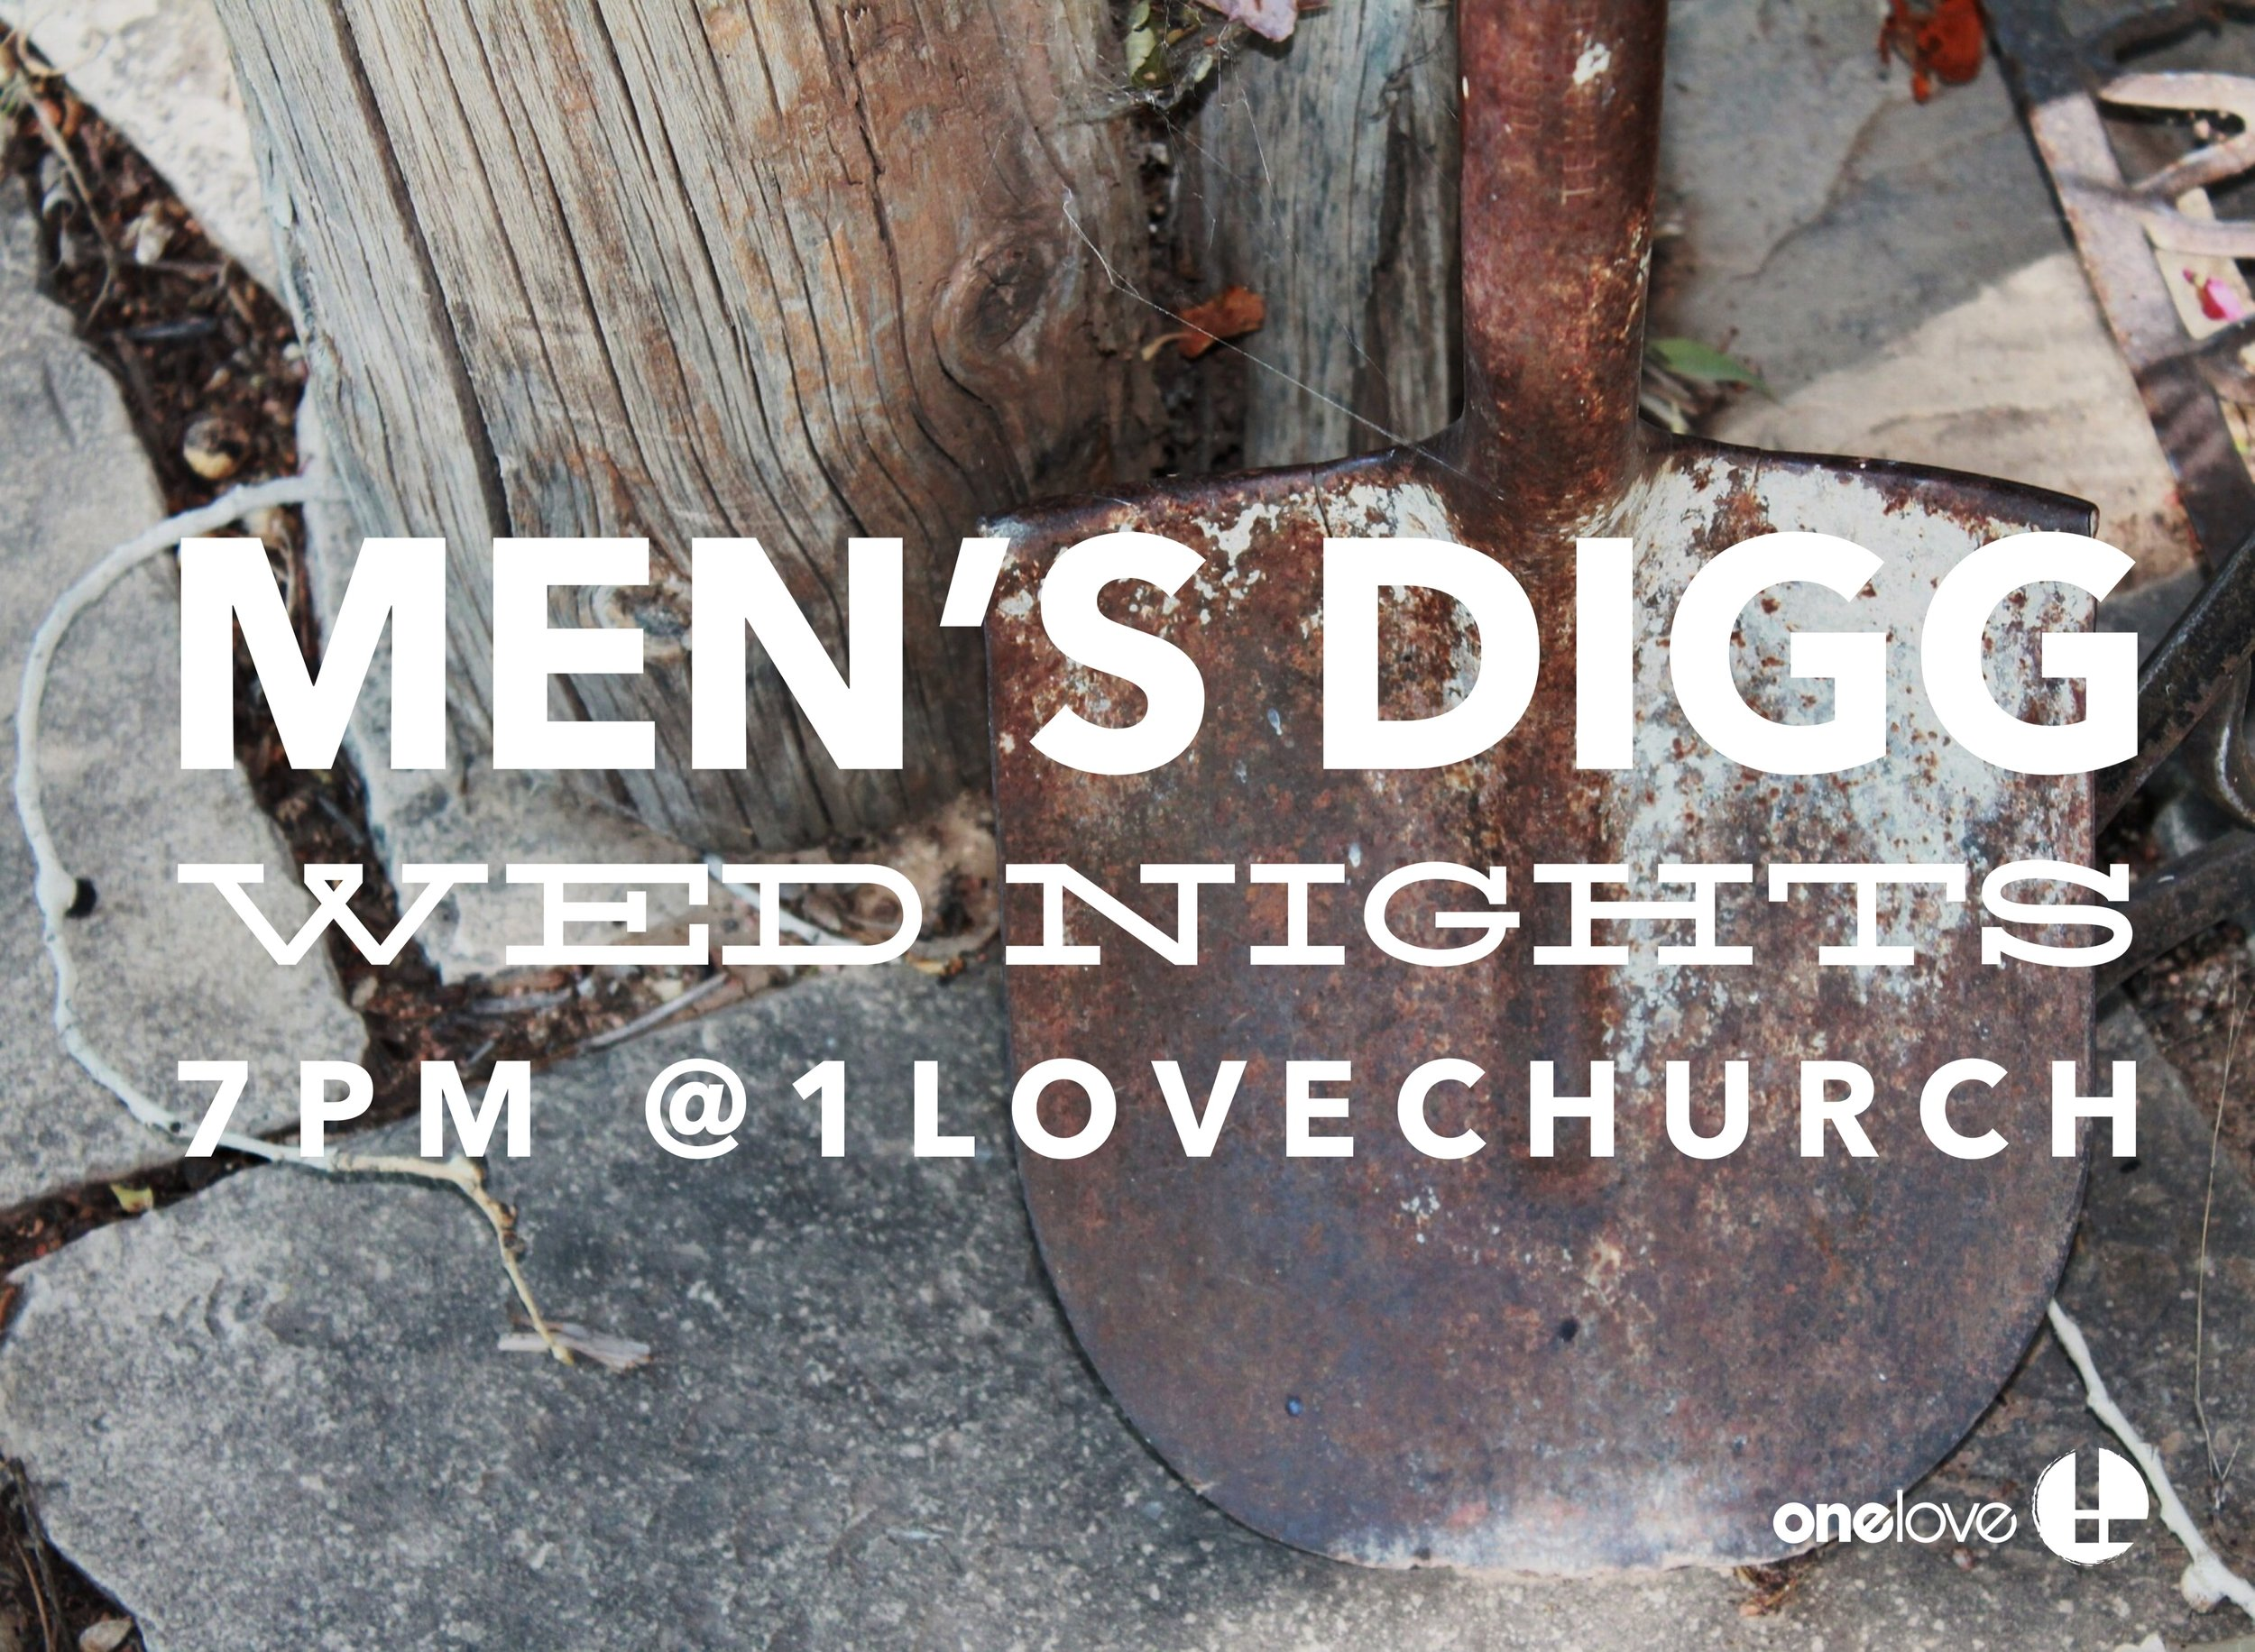 We meet every Wednesday at 7pm at One Love Church -